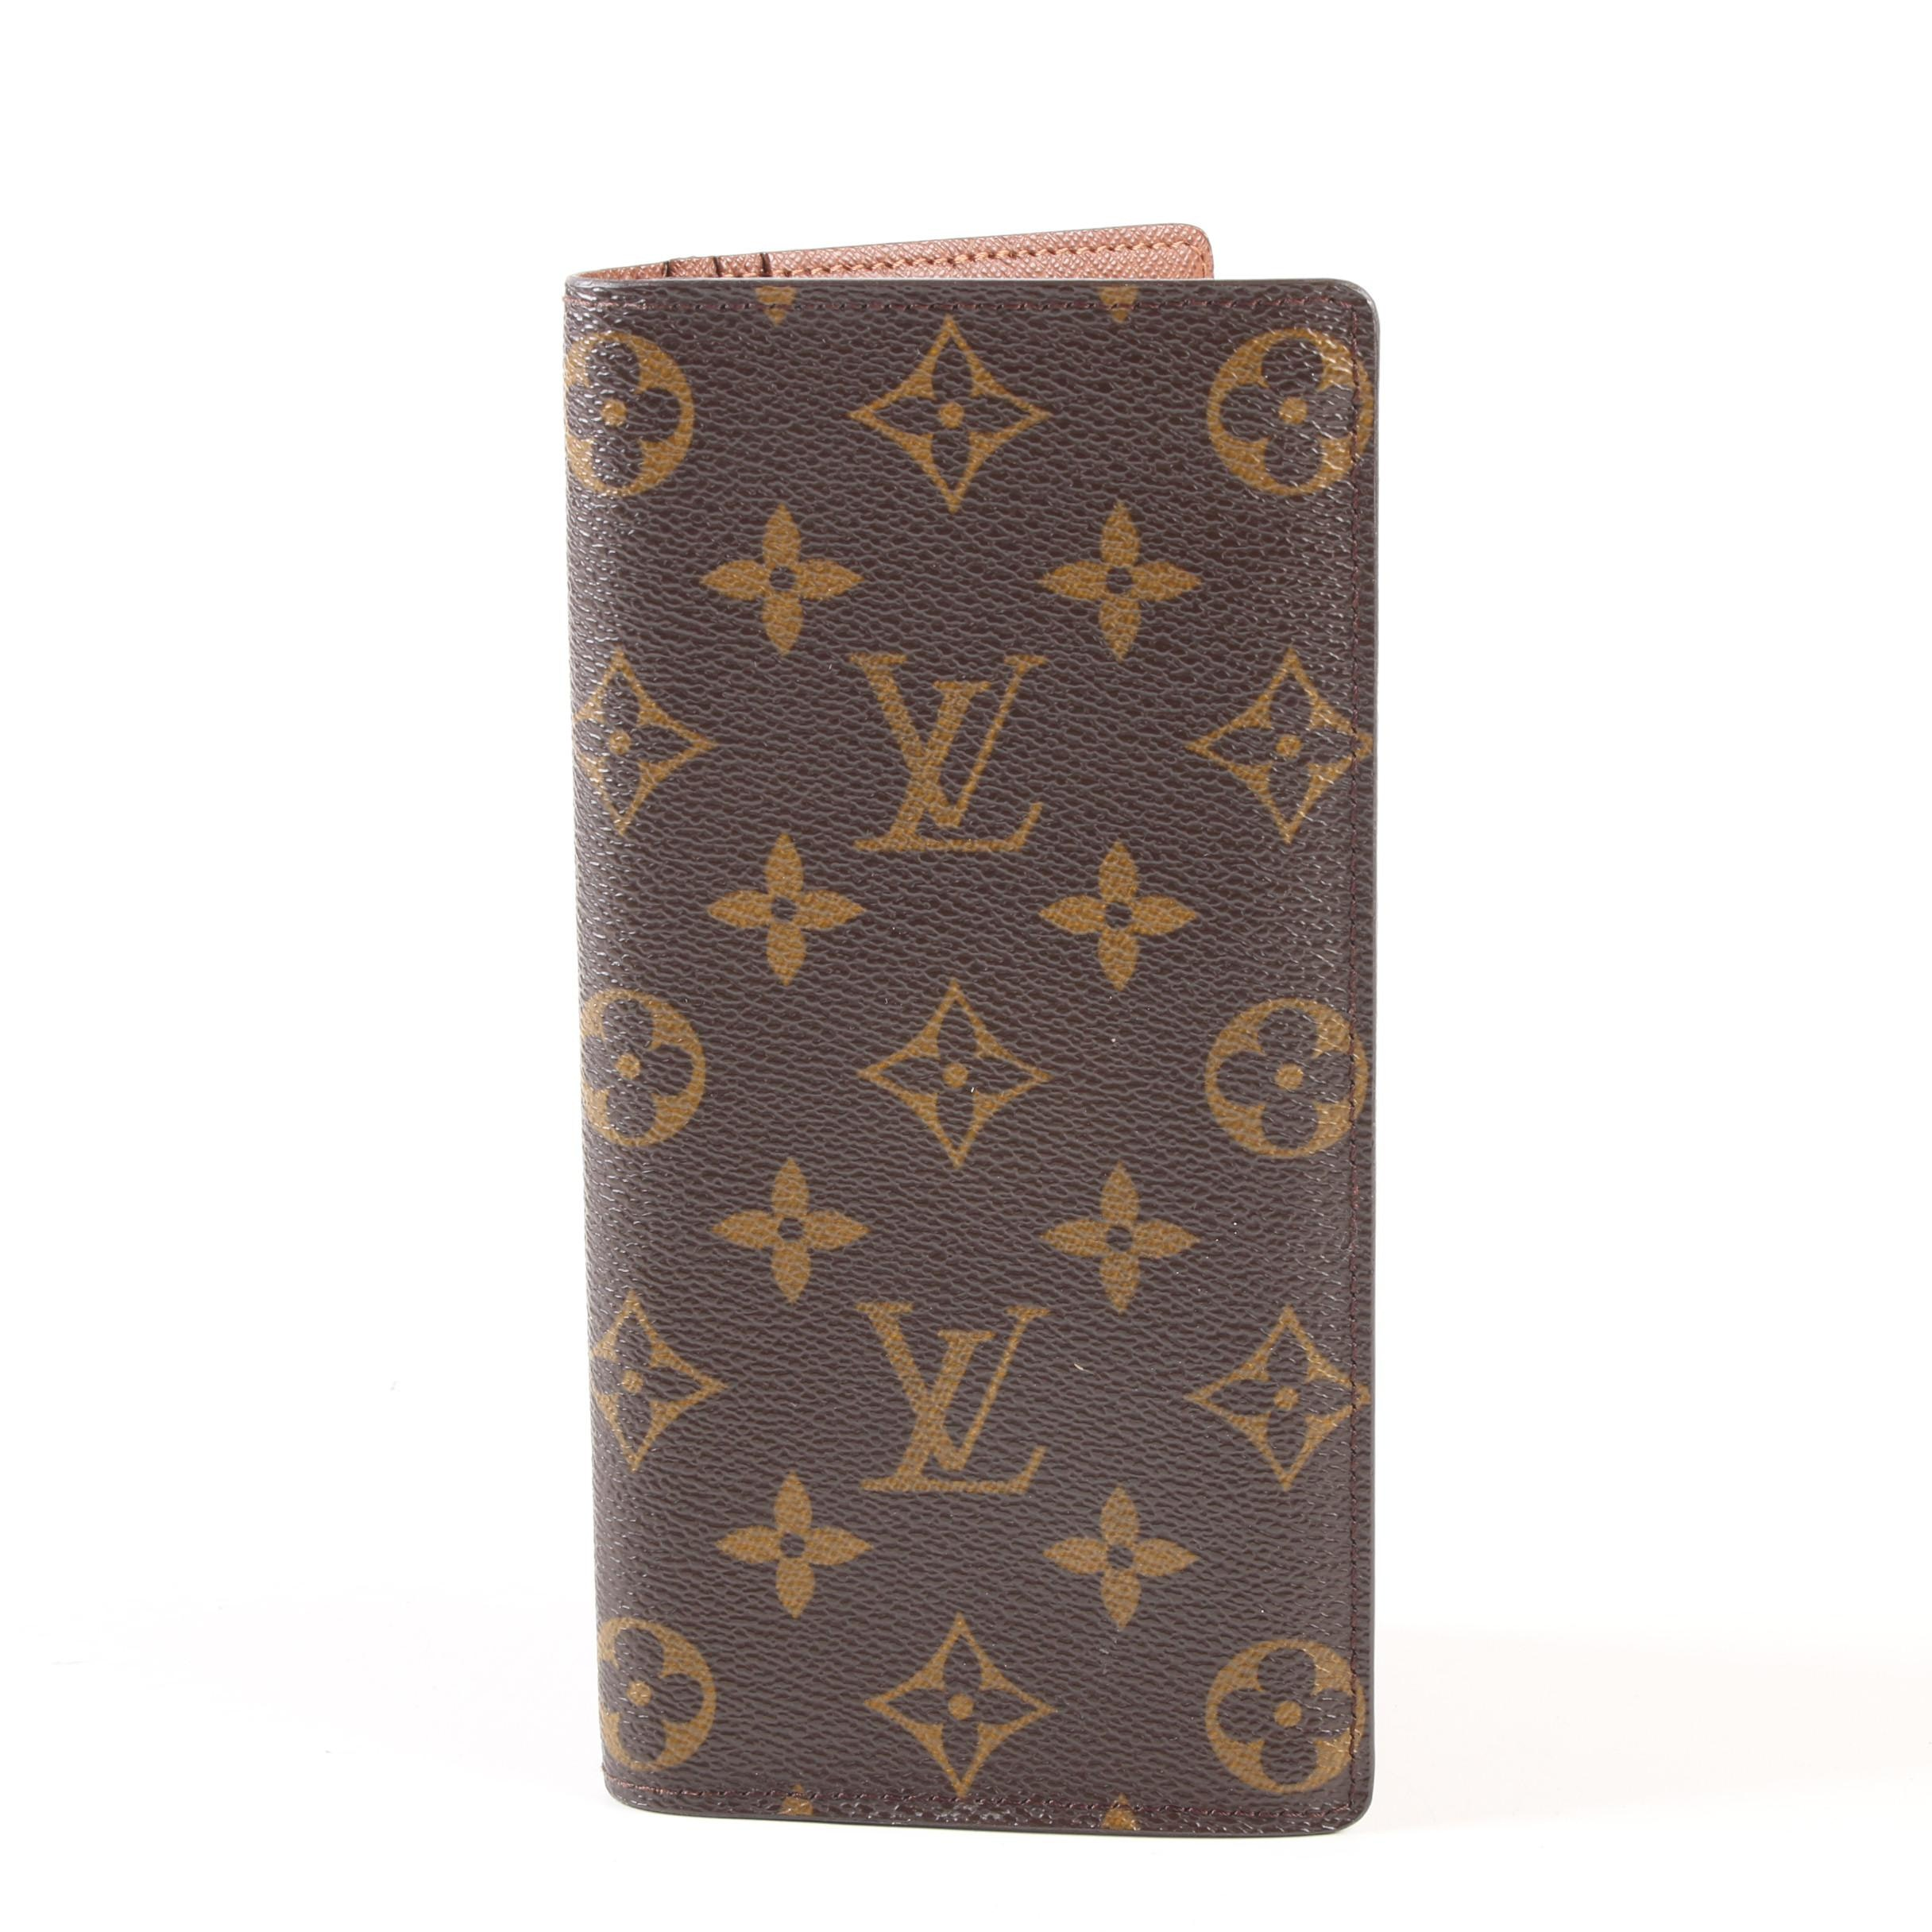 Louis Vuitton Paris Brazza Wallet in Monogram Canvas and Taiga Leather